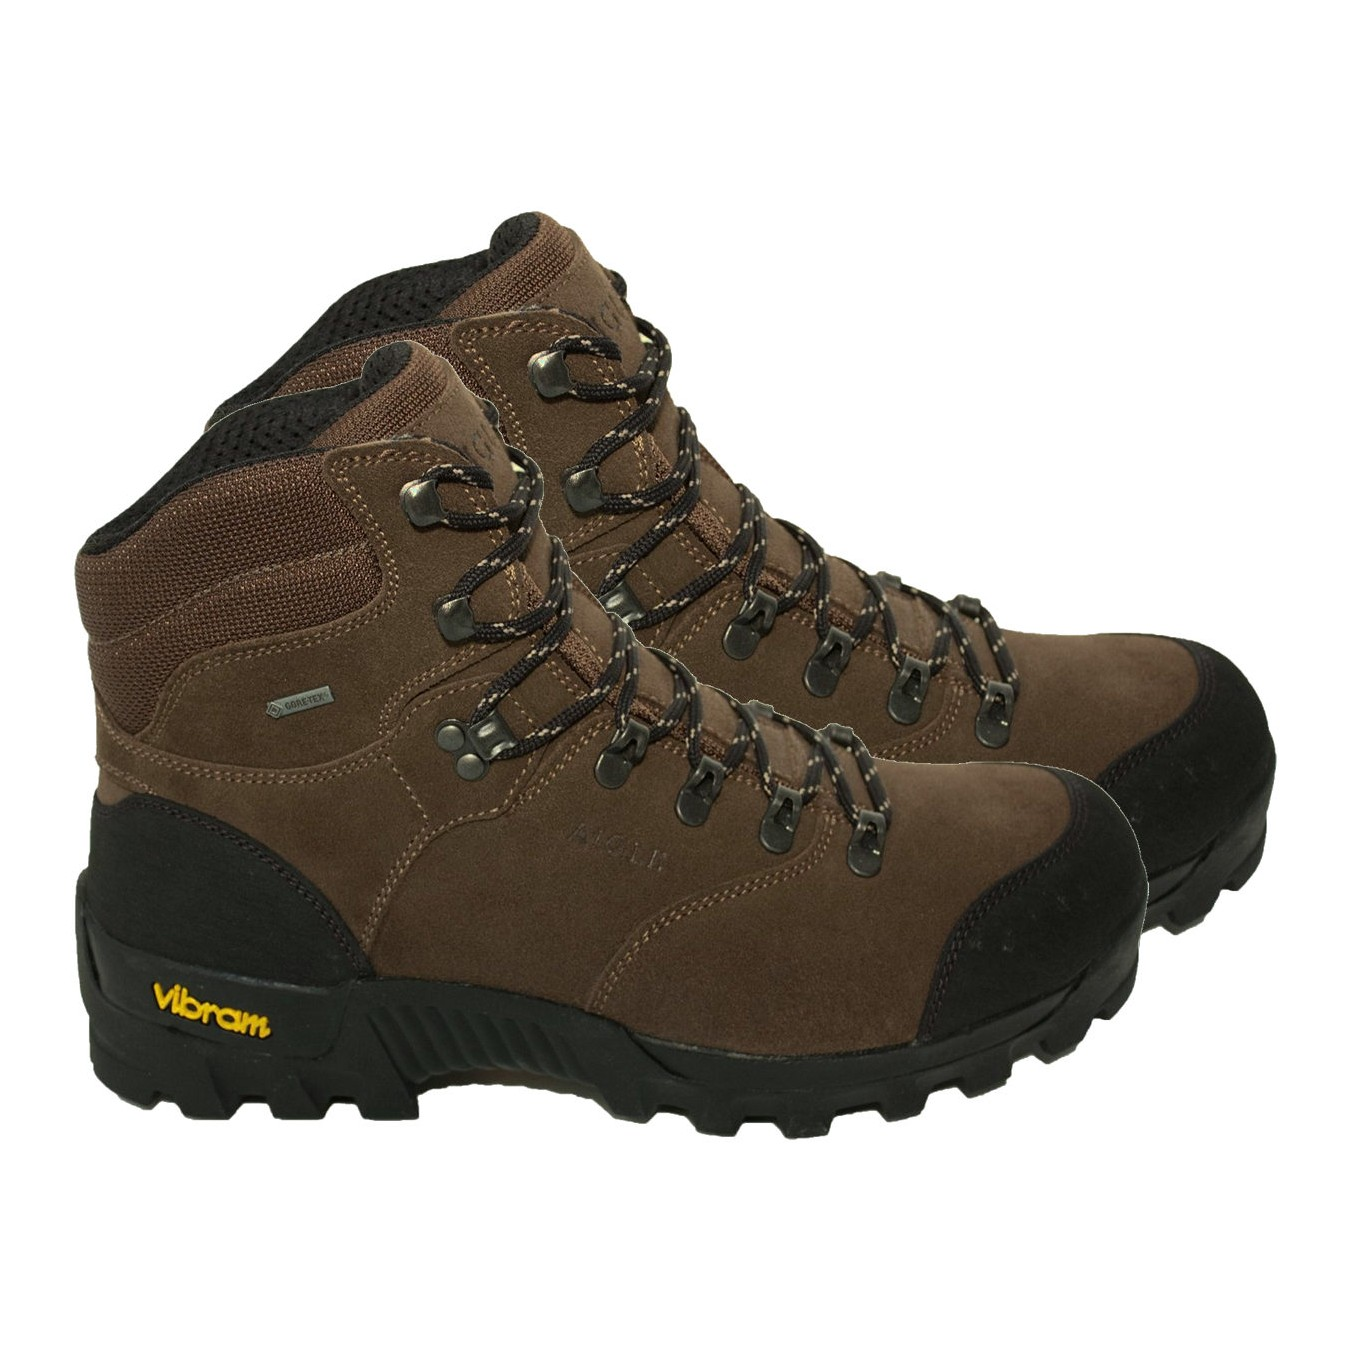 a1a85cd96e9 AIGLE Altavio Gore Tex Waterproof Hiking Boots ankle support hard ...